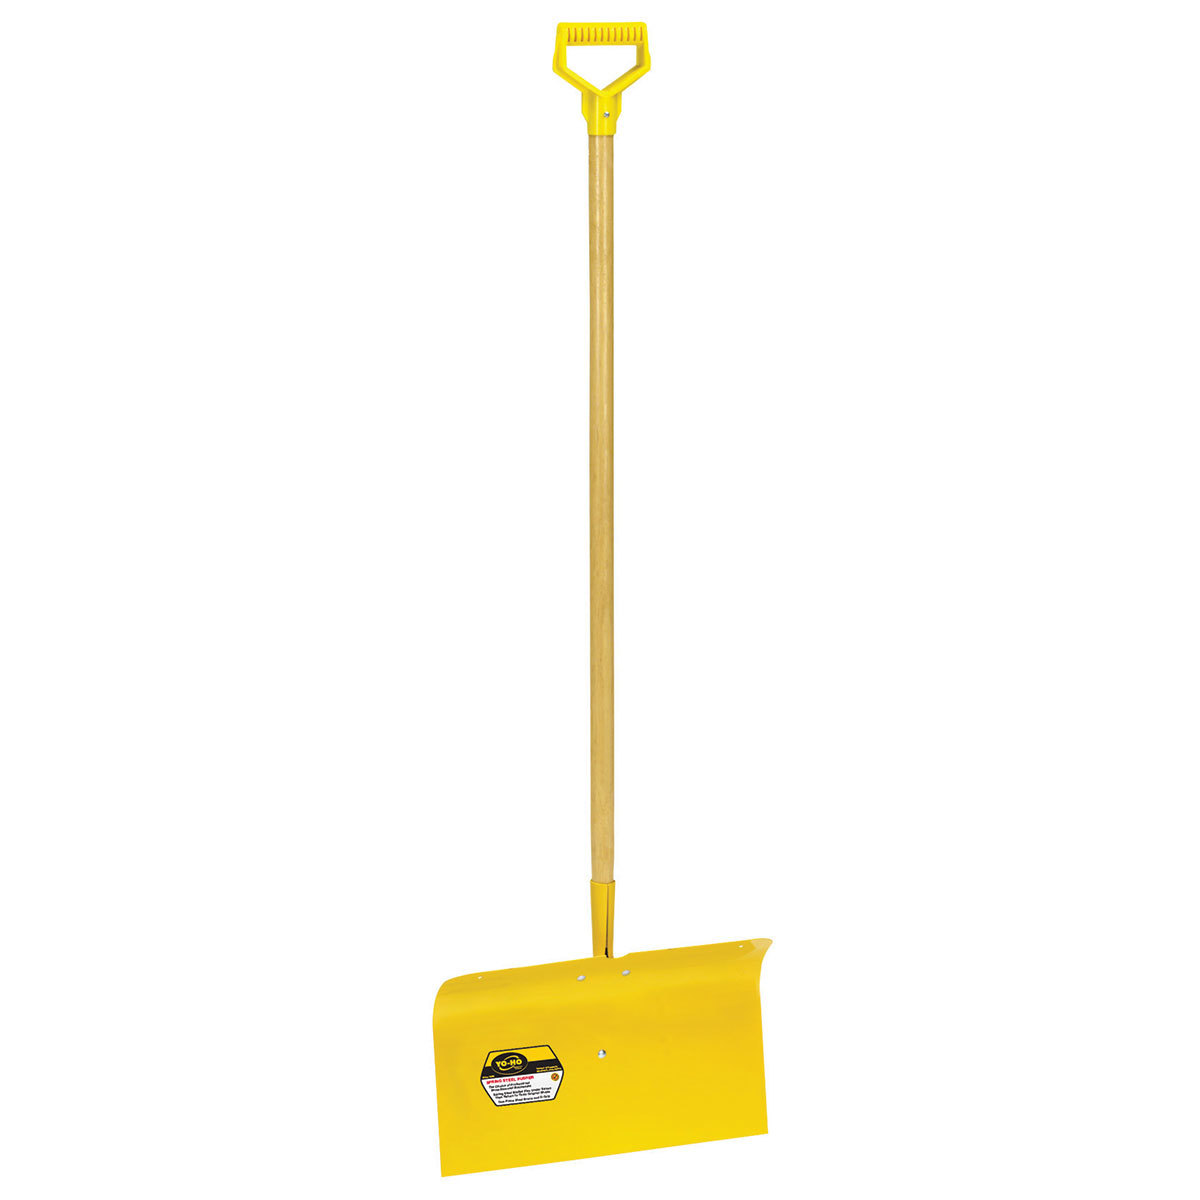 Steel Snow Pusher is yellow with a wood handle.